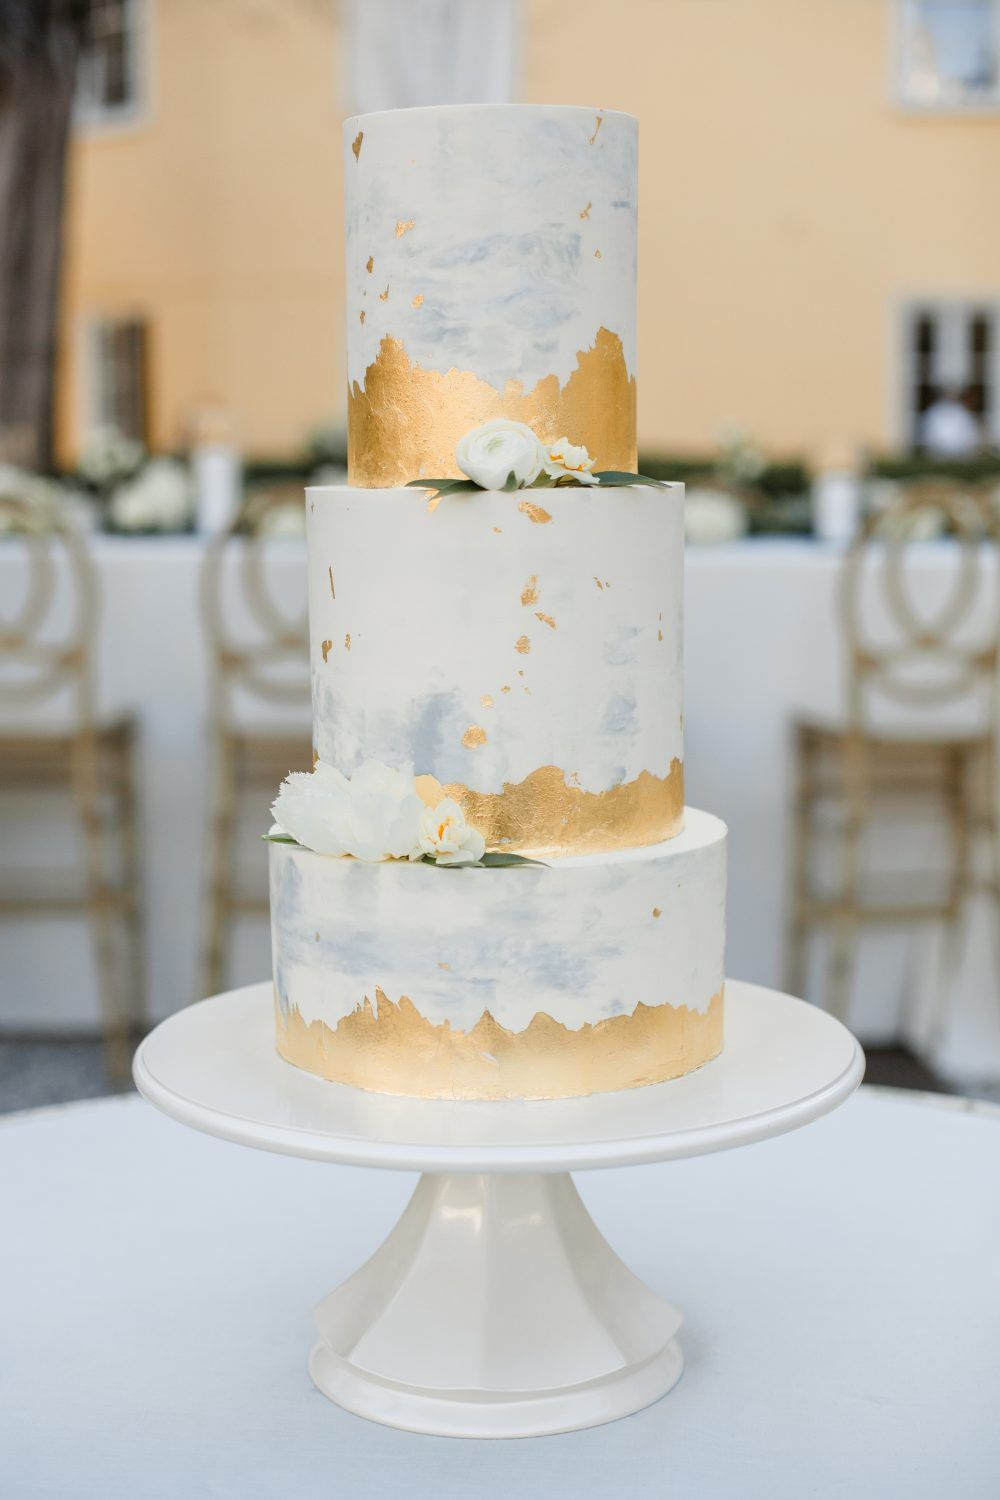 Real Wedding Inspiration Katelyn Benjamin S Timeless William Aiken House Wedding Charleston Event Wedding Venues Patrick Properties Hospitality Group Wedding Cake Table Beach Wedding Cake Wedding Cakes Blue